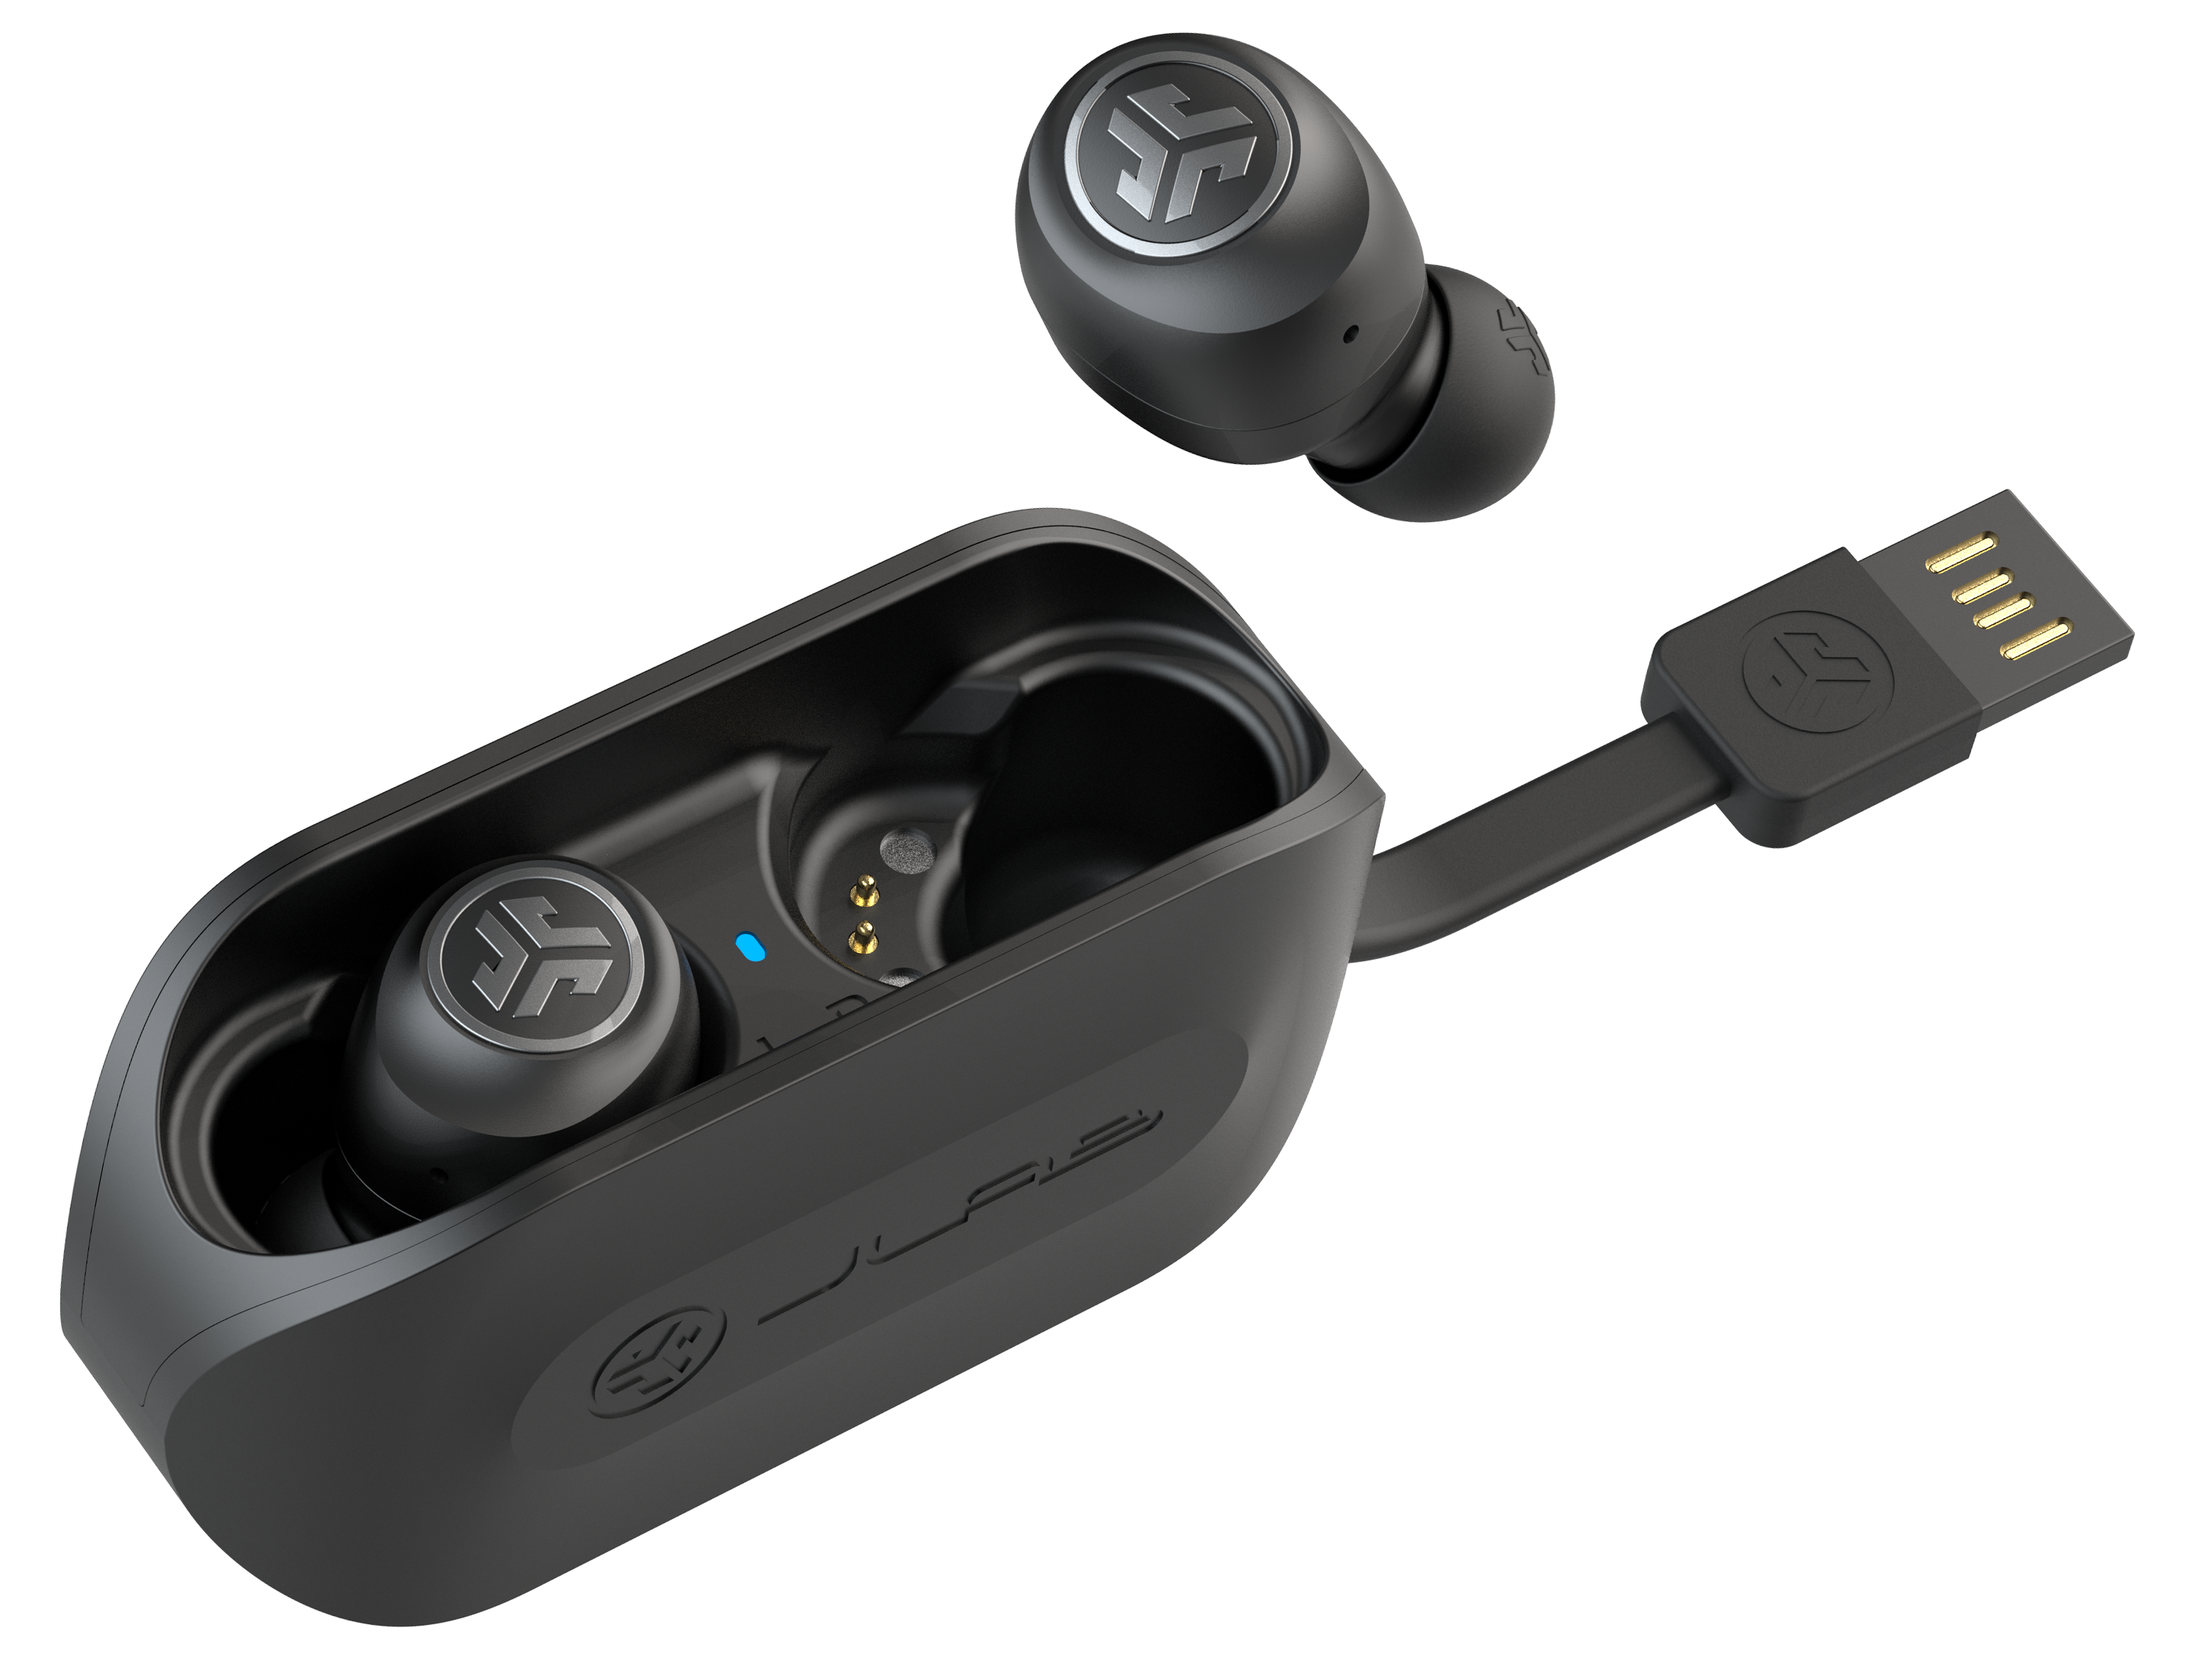 JBuds Air True Wireless Earbuds Ørepropper i ladetaske med integreret USB-kabel